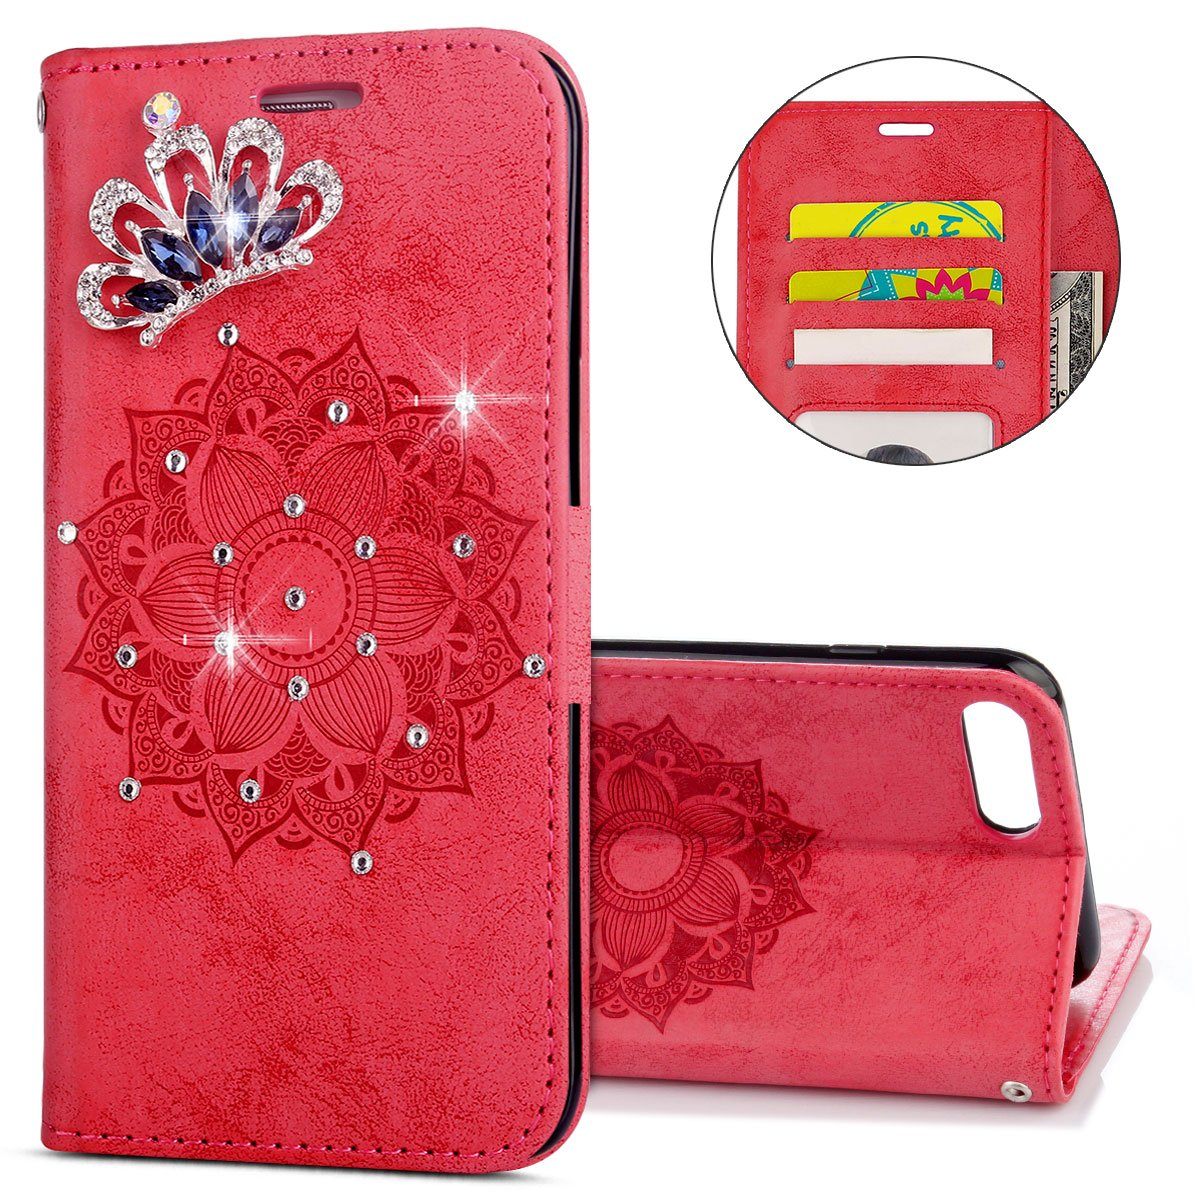 IKASEFU iPhone 7 plus,iPhone 8 plus Case,Clear Crown Rhinestone Bling Glitter Wallet with Card Holder Emboss Mandala Floral Pu Leather Magnetic Flip Protective Cover for iPhone 7 Plus/8 Plus,Red